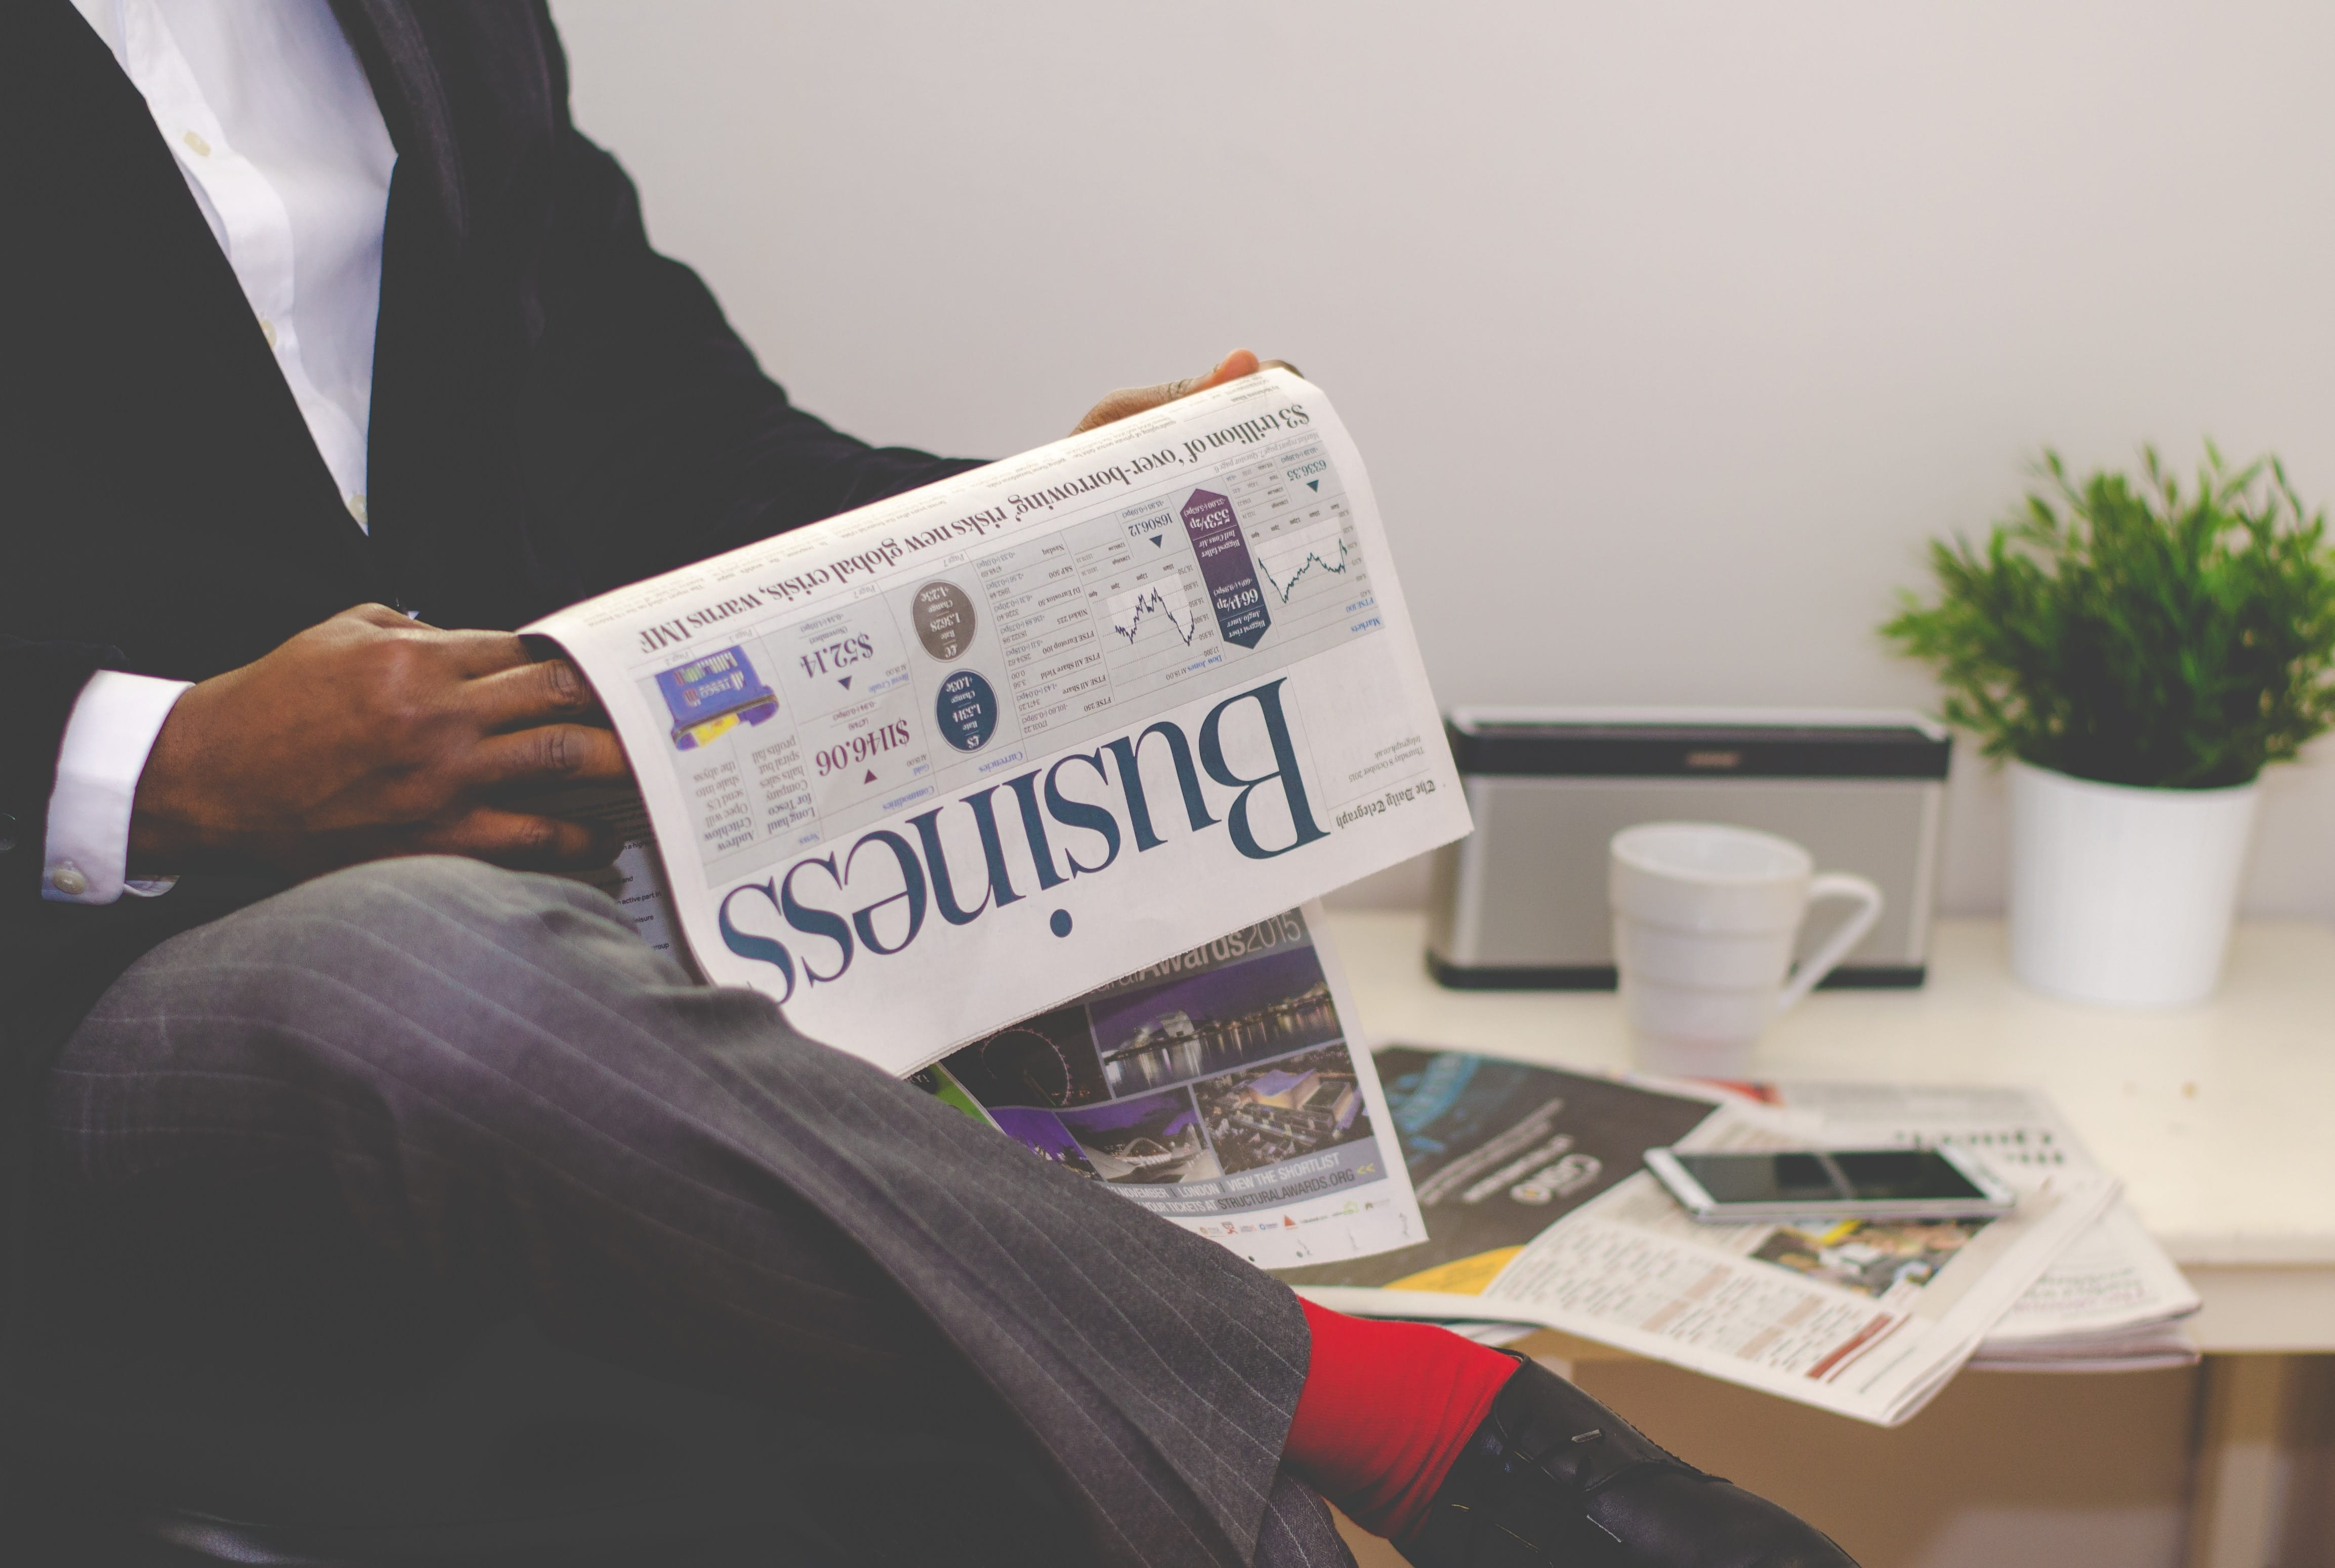 Man reading the Business section of the newspaper while having coffee at a table; image by Adeolu Eletu, via unsplash.com.